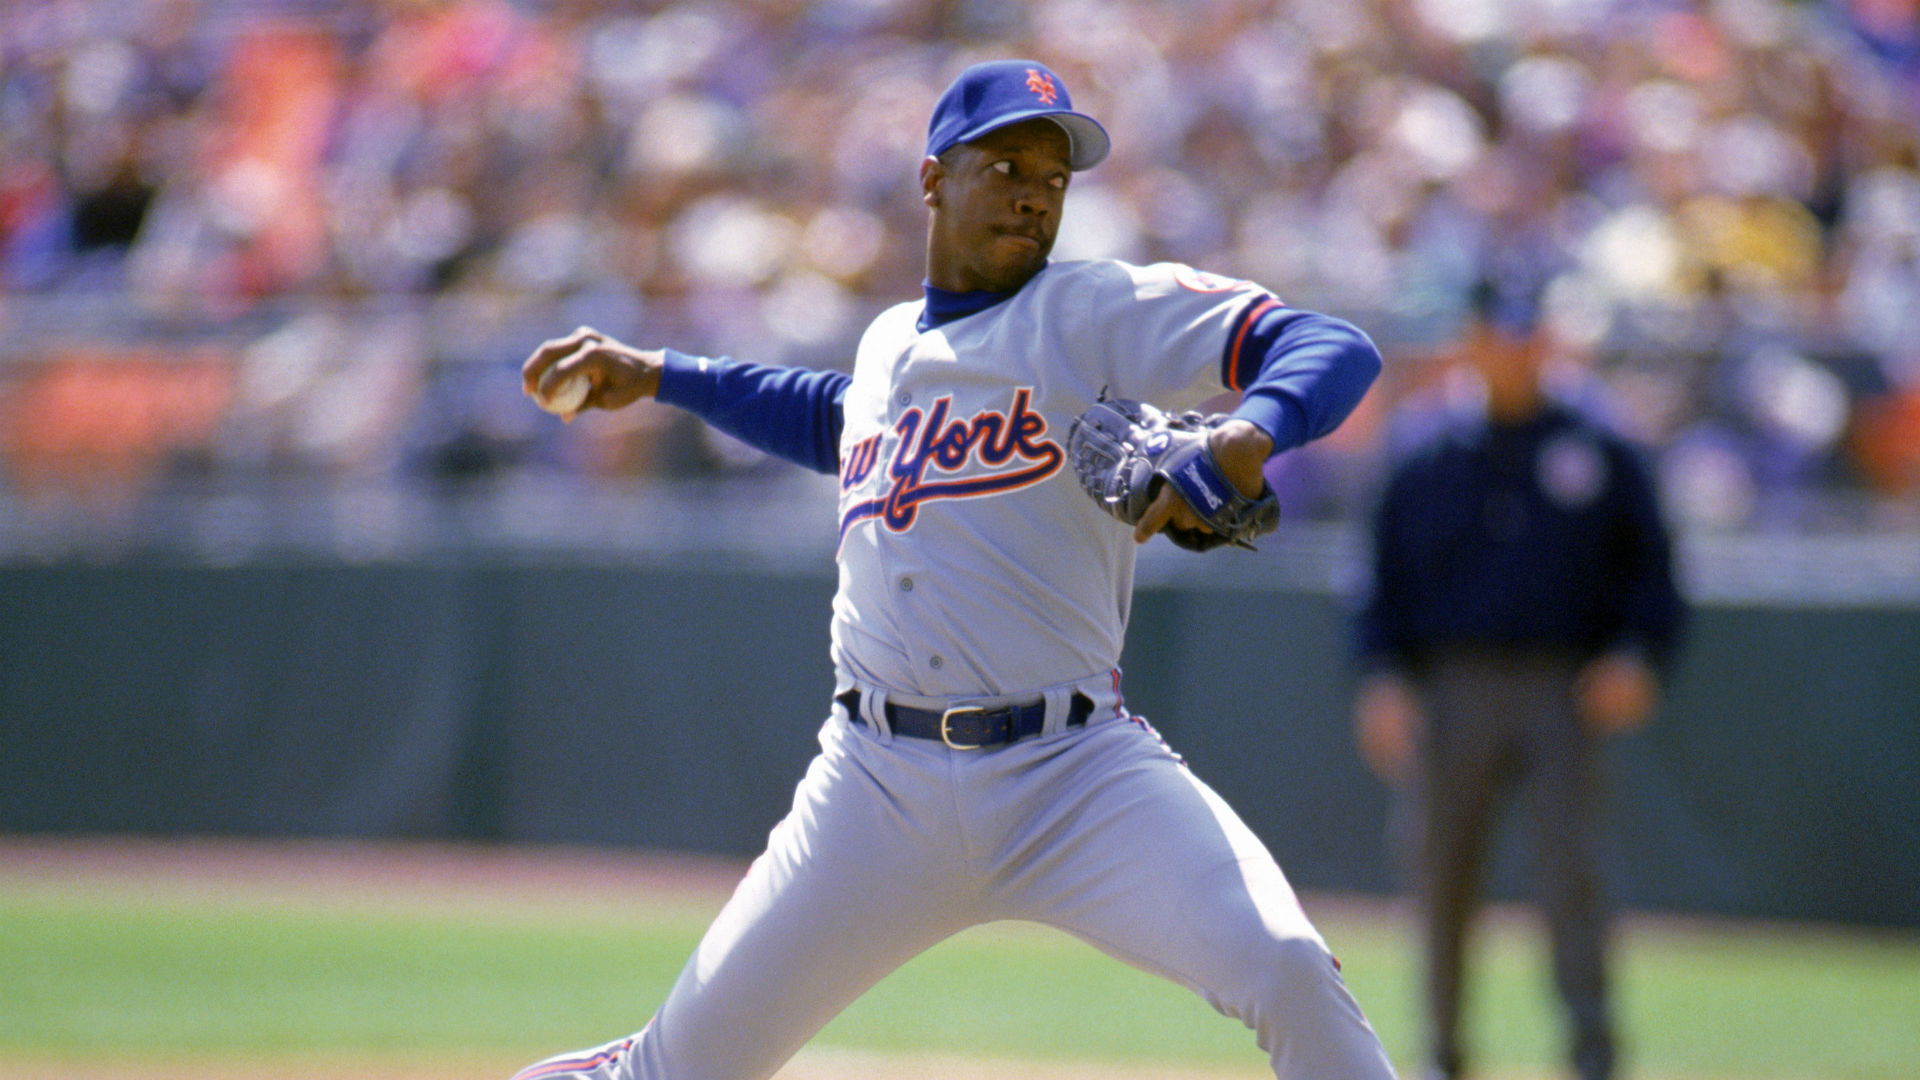 Gooden has struggled with substance abuse issues for years, and in 2006 served seven months in prison for a drug-related issue.